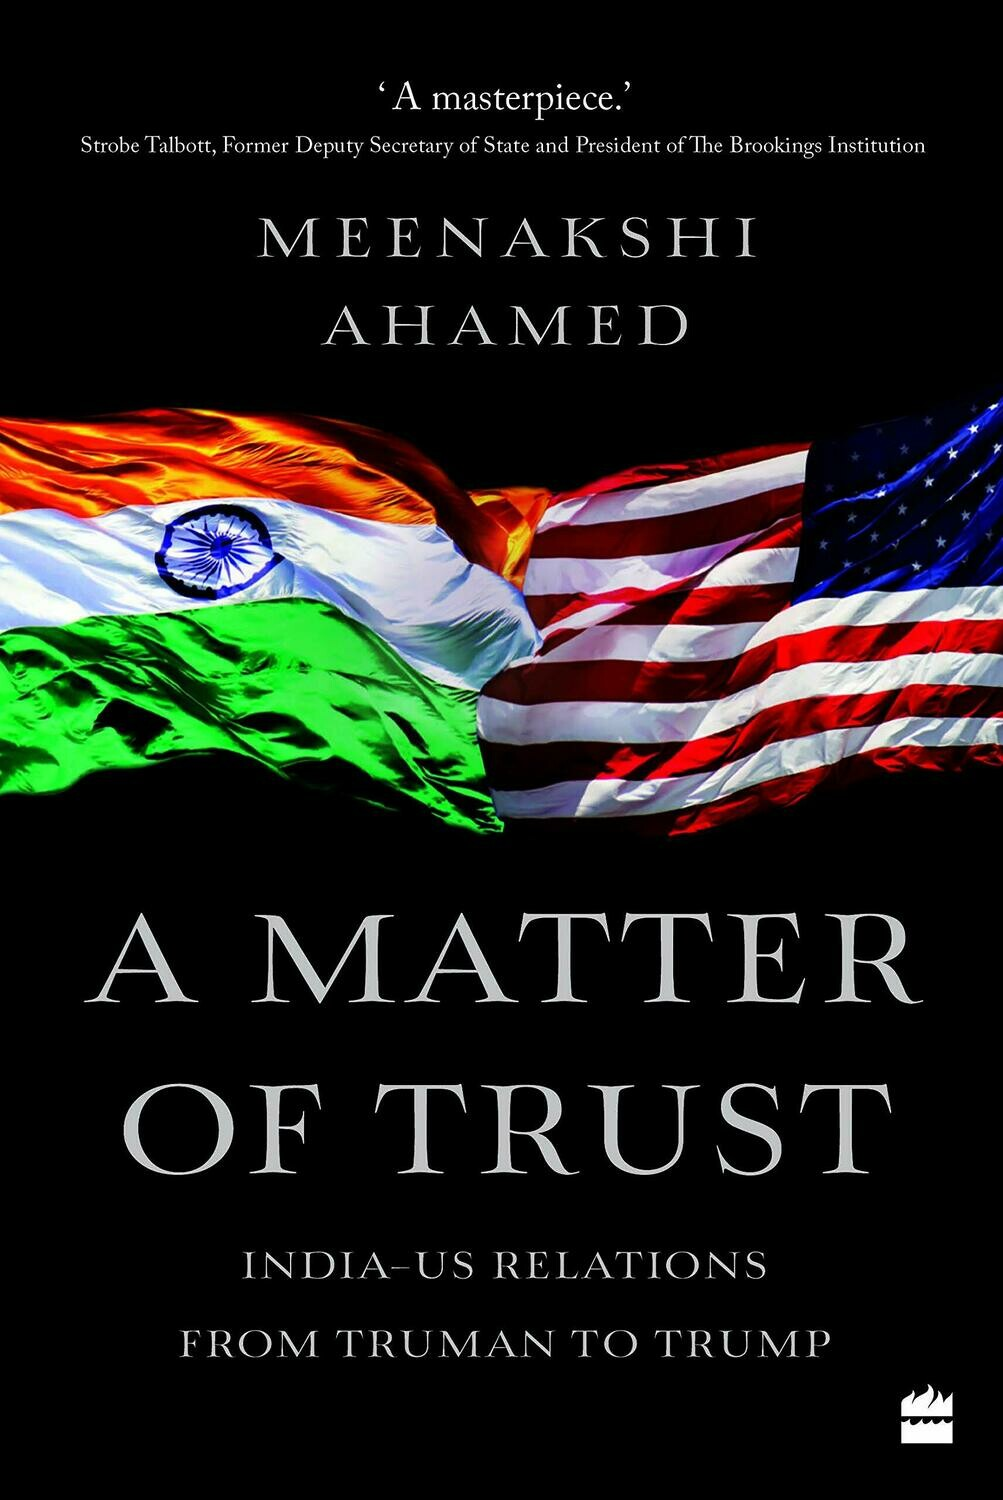 A Matter Of Trust: India-US Relations from Truman to Trump